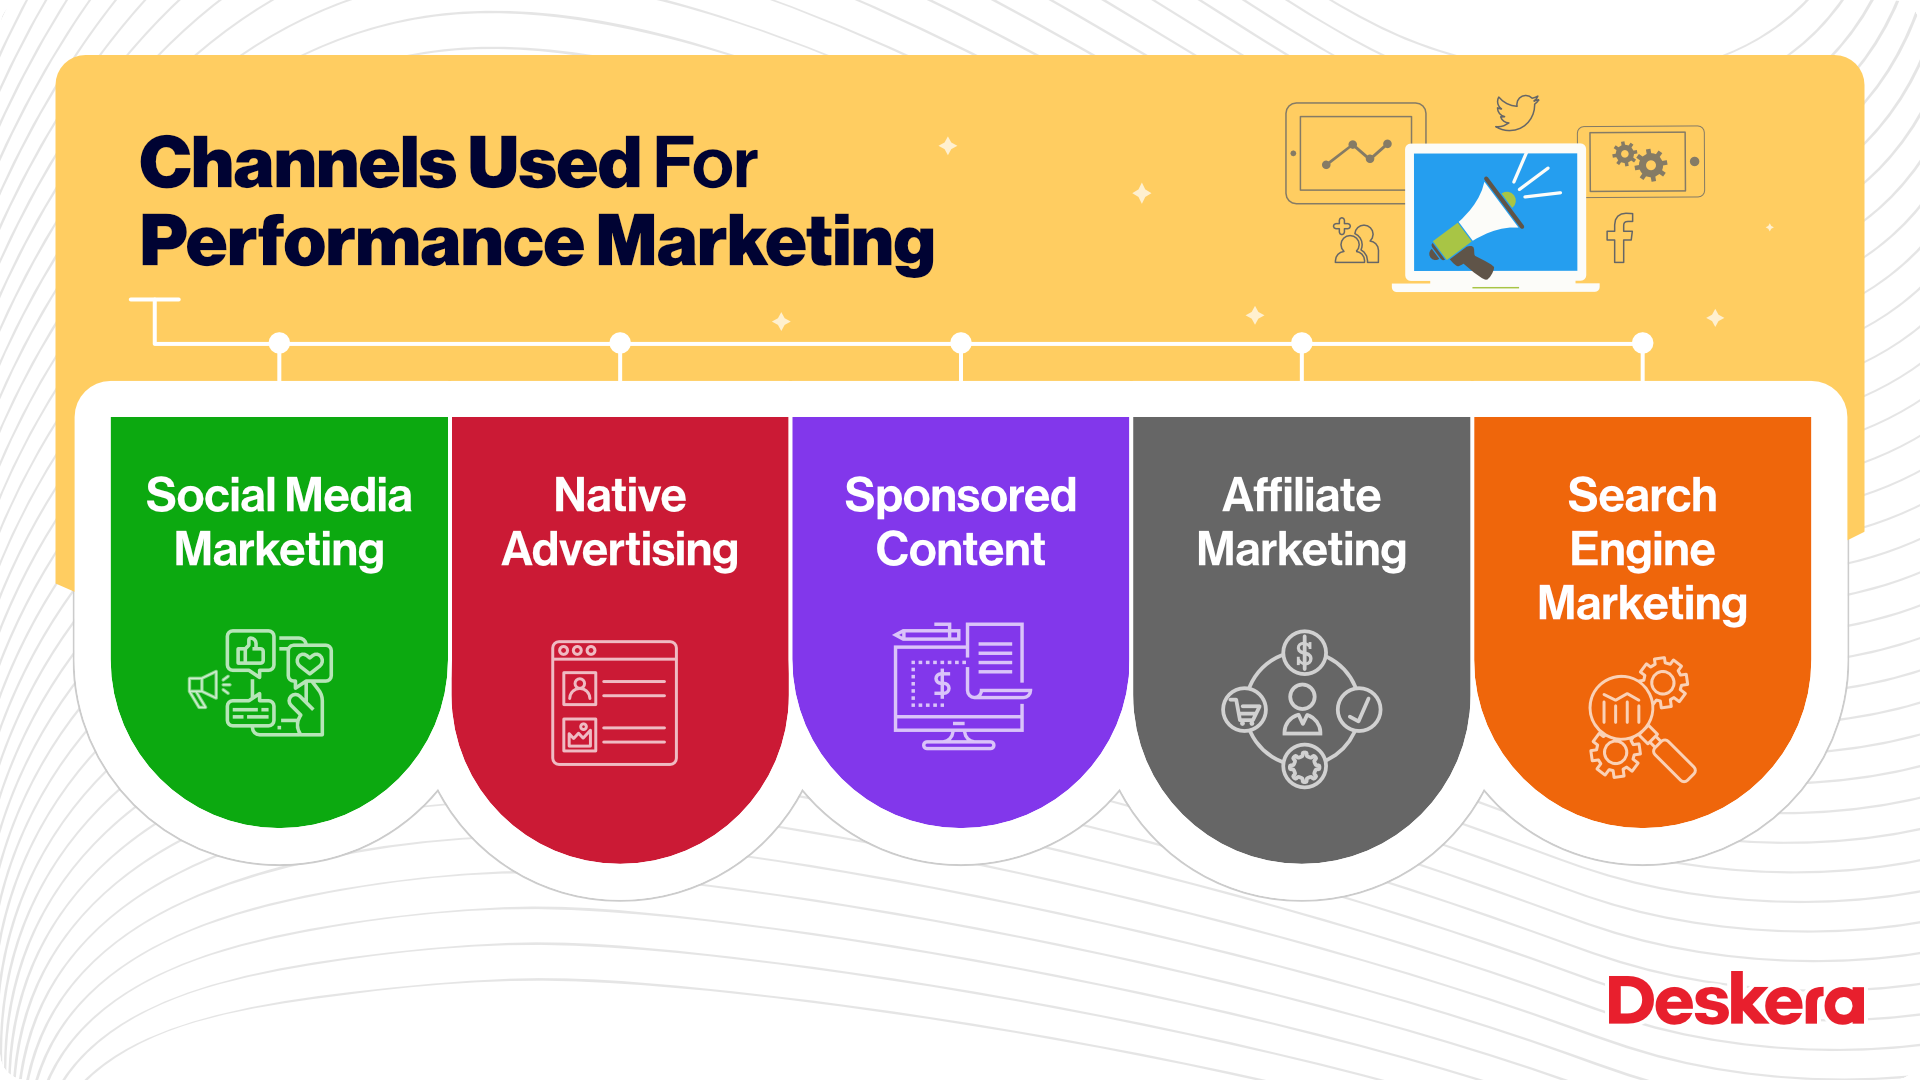 Channels Used for Performance Marketing